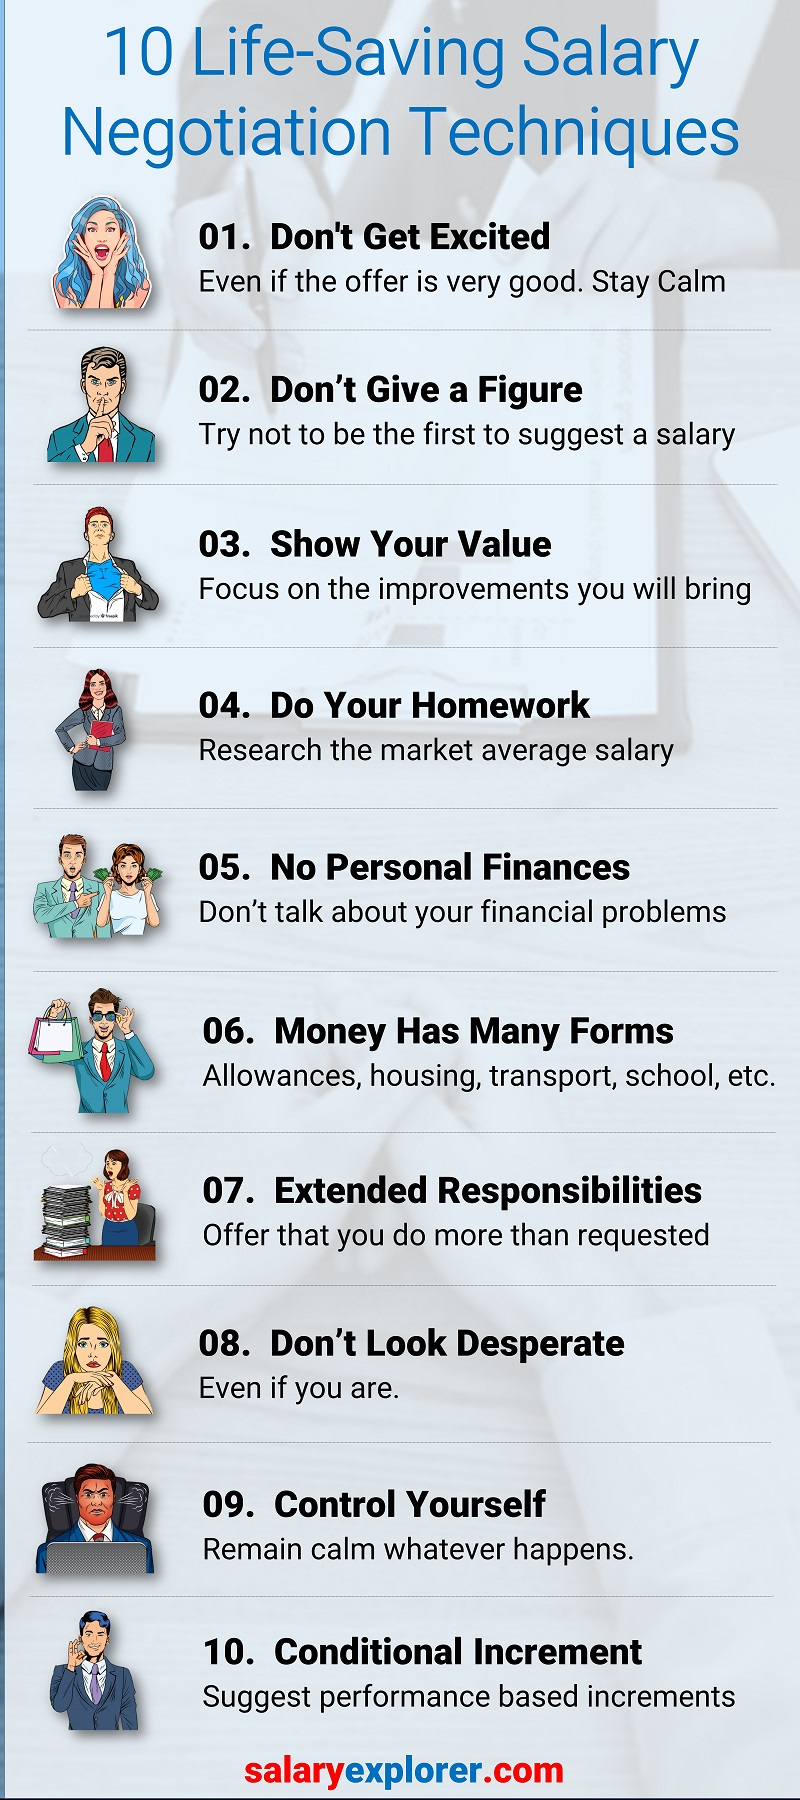 10 Life-Saving Salary Negotiation Tips for Job Seekers